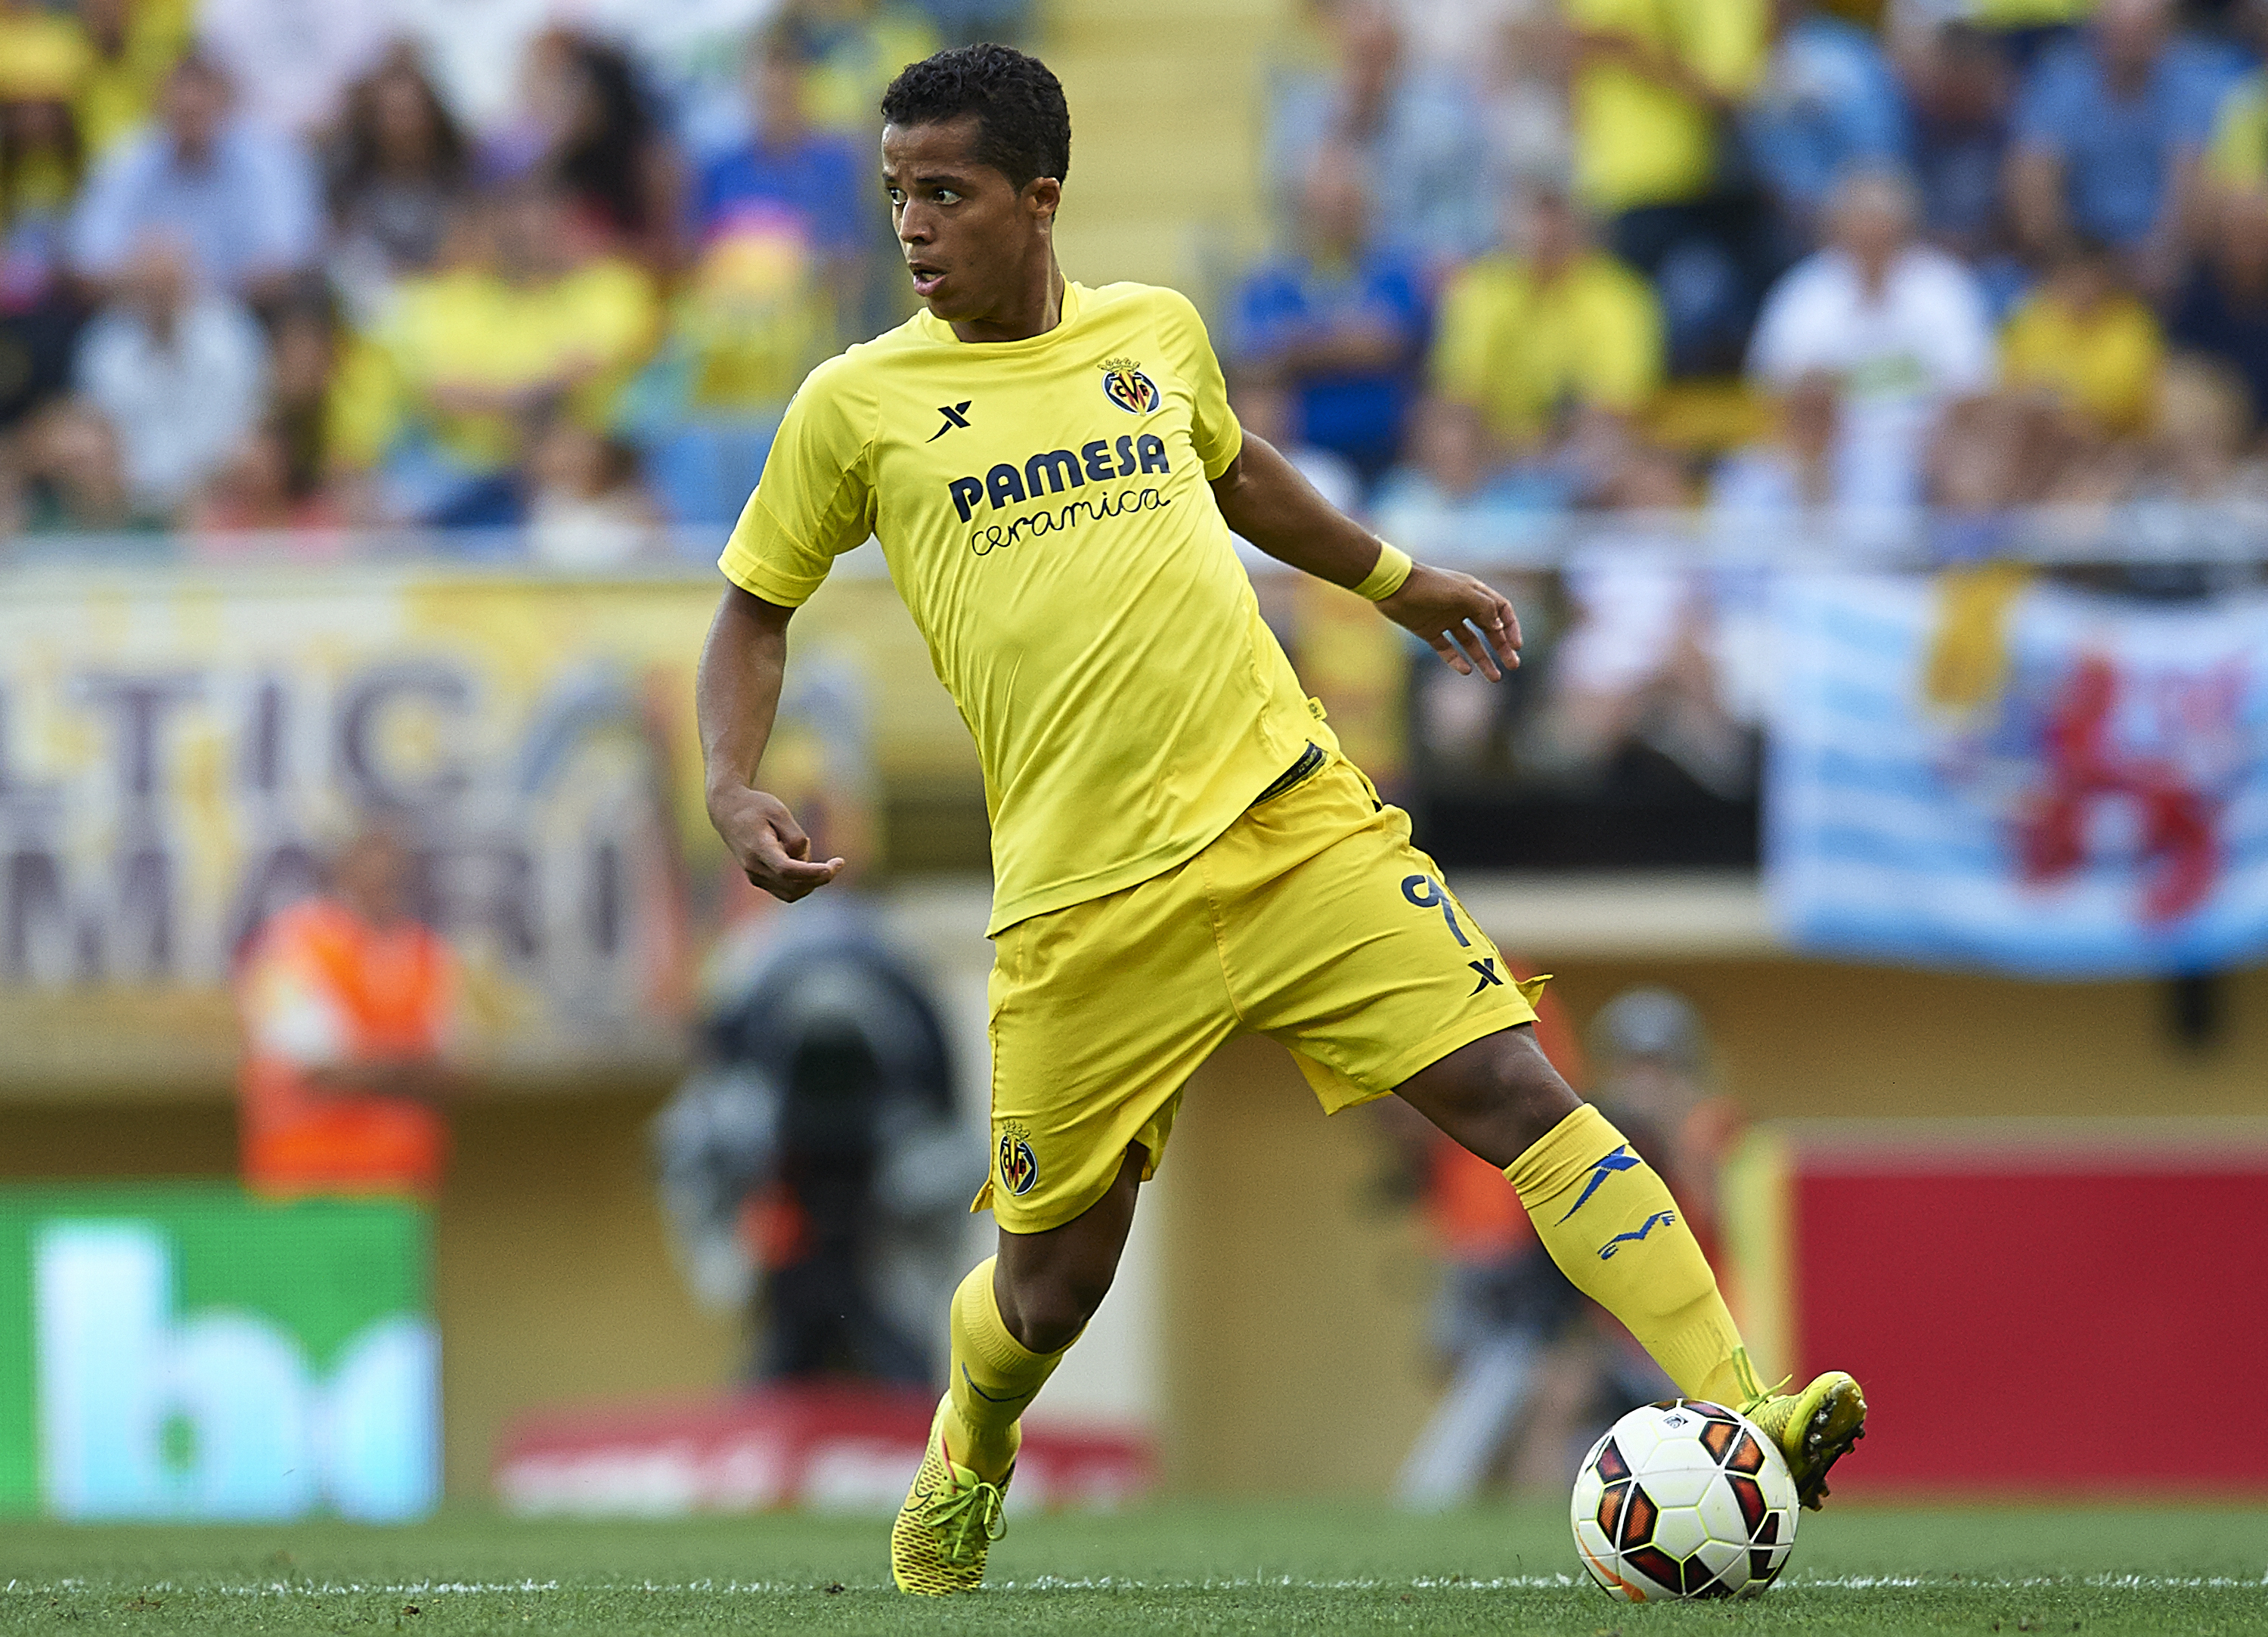 Gio starts for Villarreal today